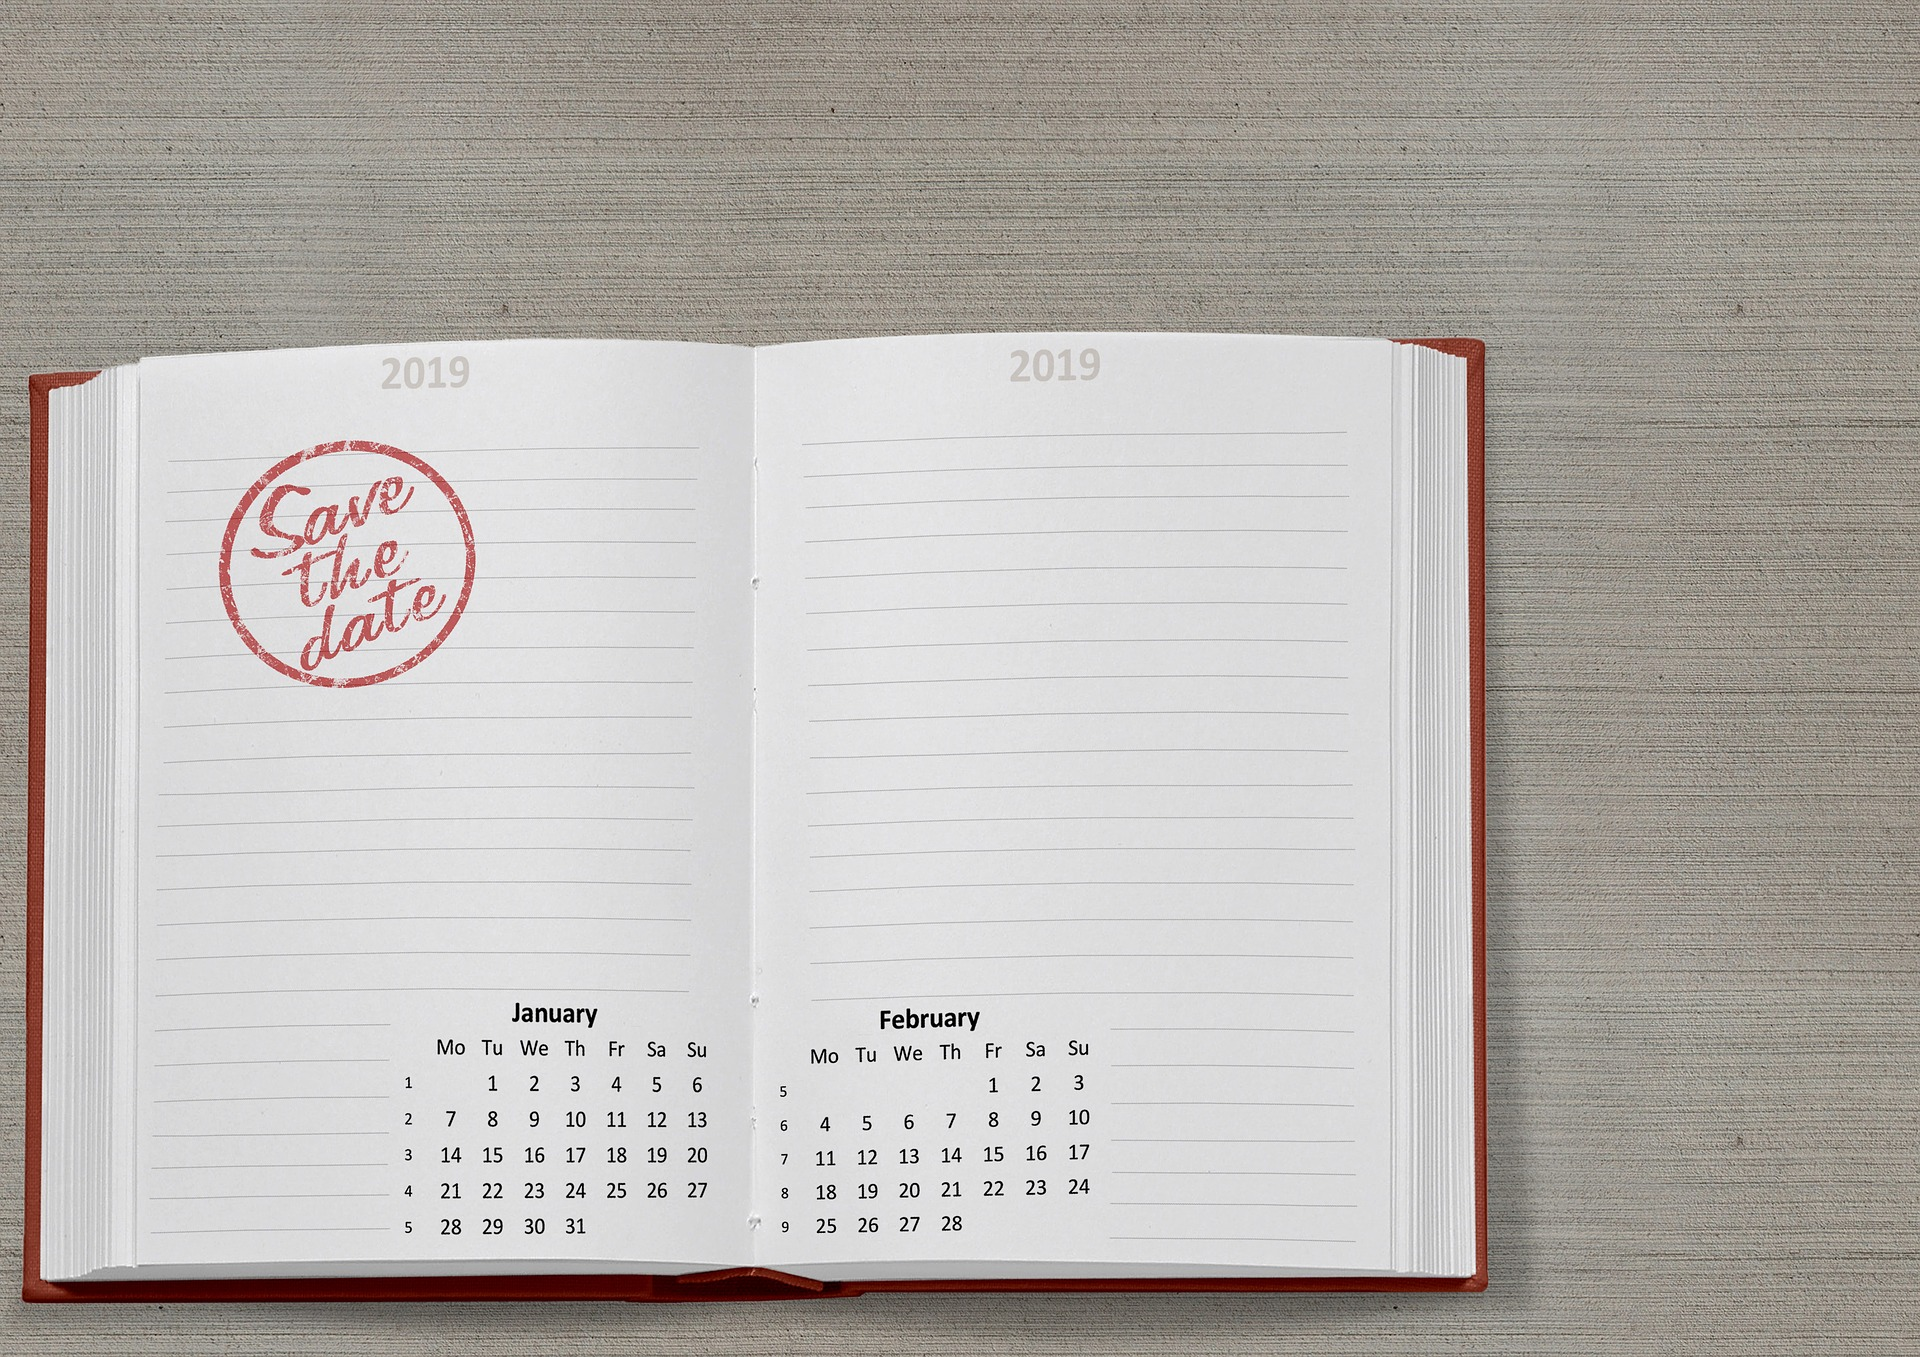 A diary showing 2019 calendar